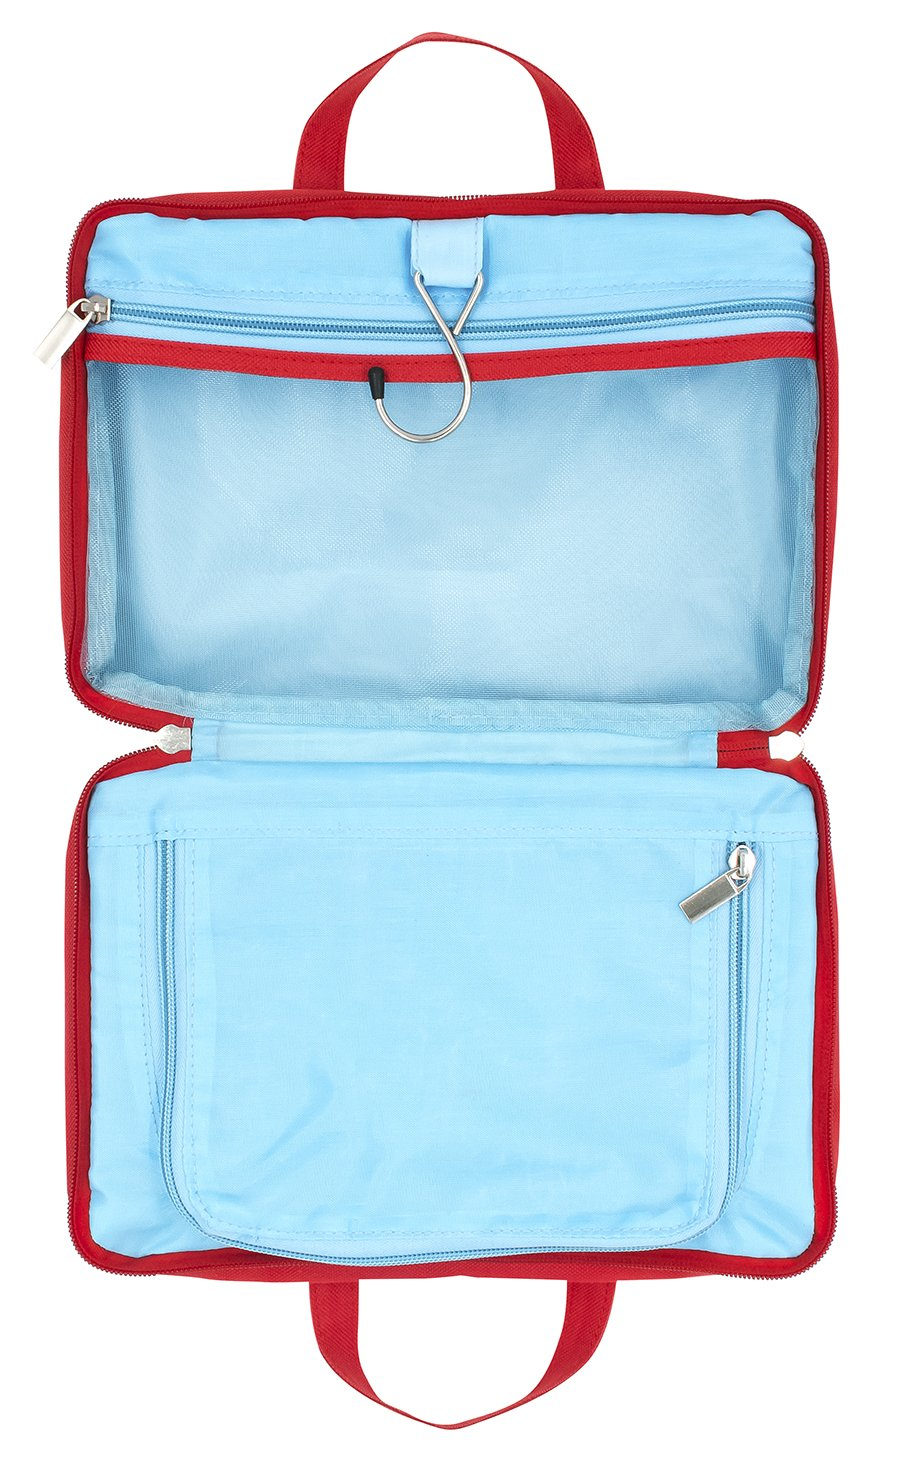 Girl Almighty Red Blue 7.5 x 11 Inch Polyester Makeup Bag with Handles